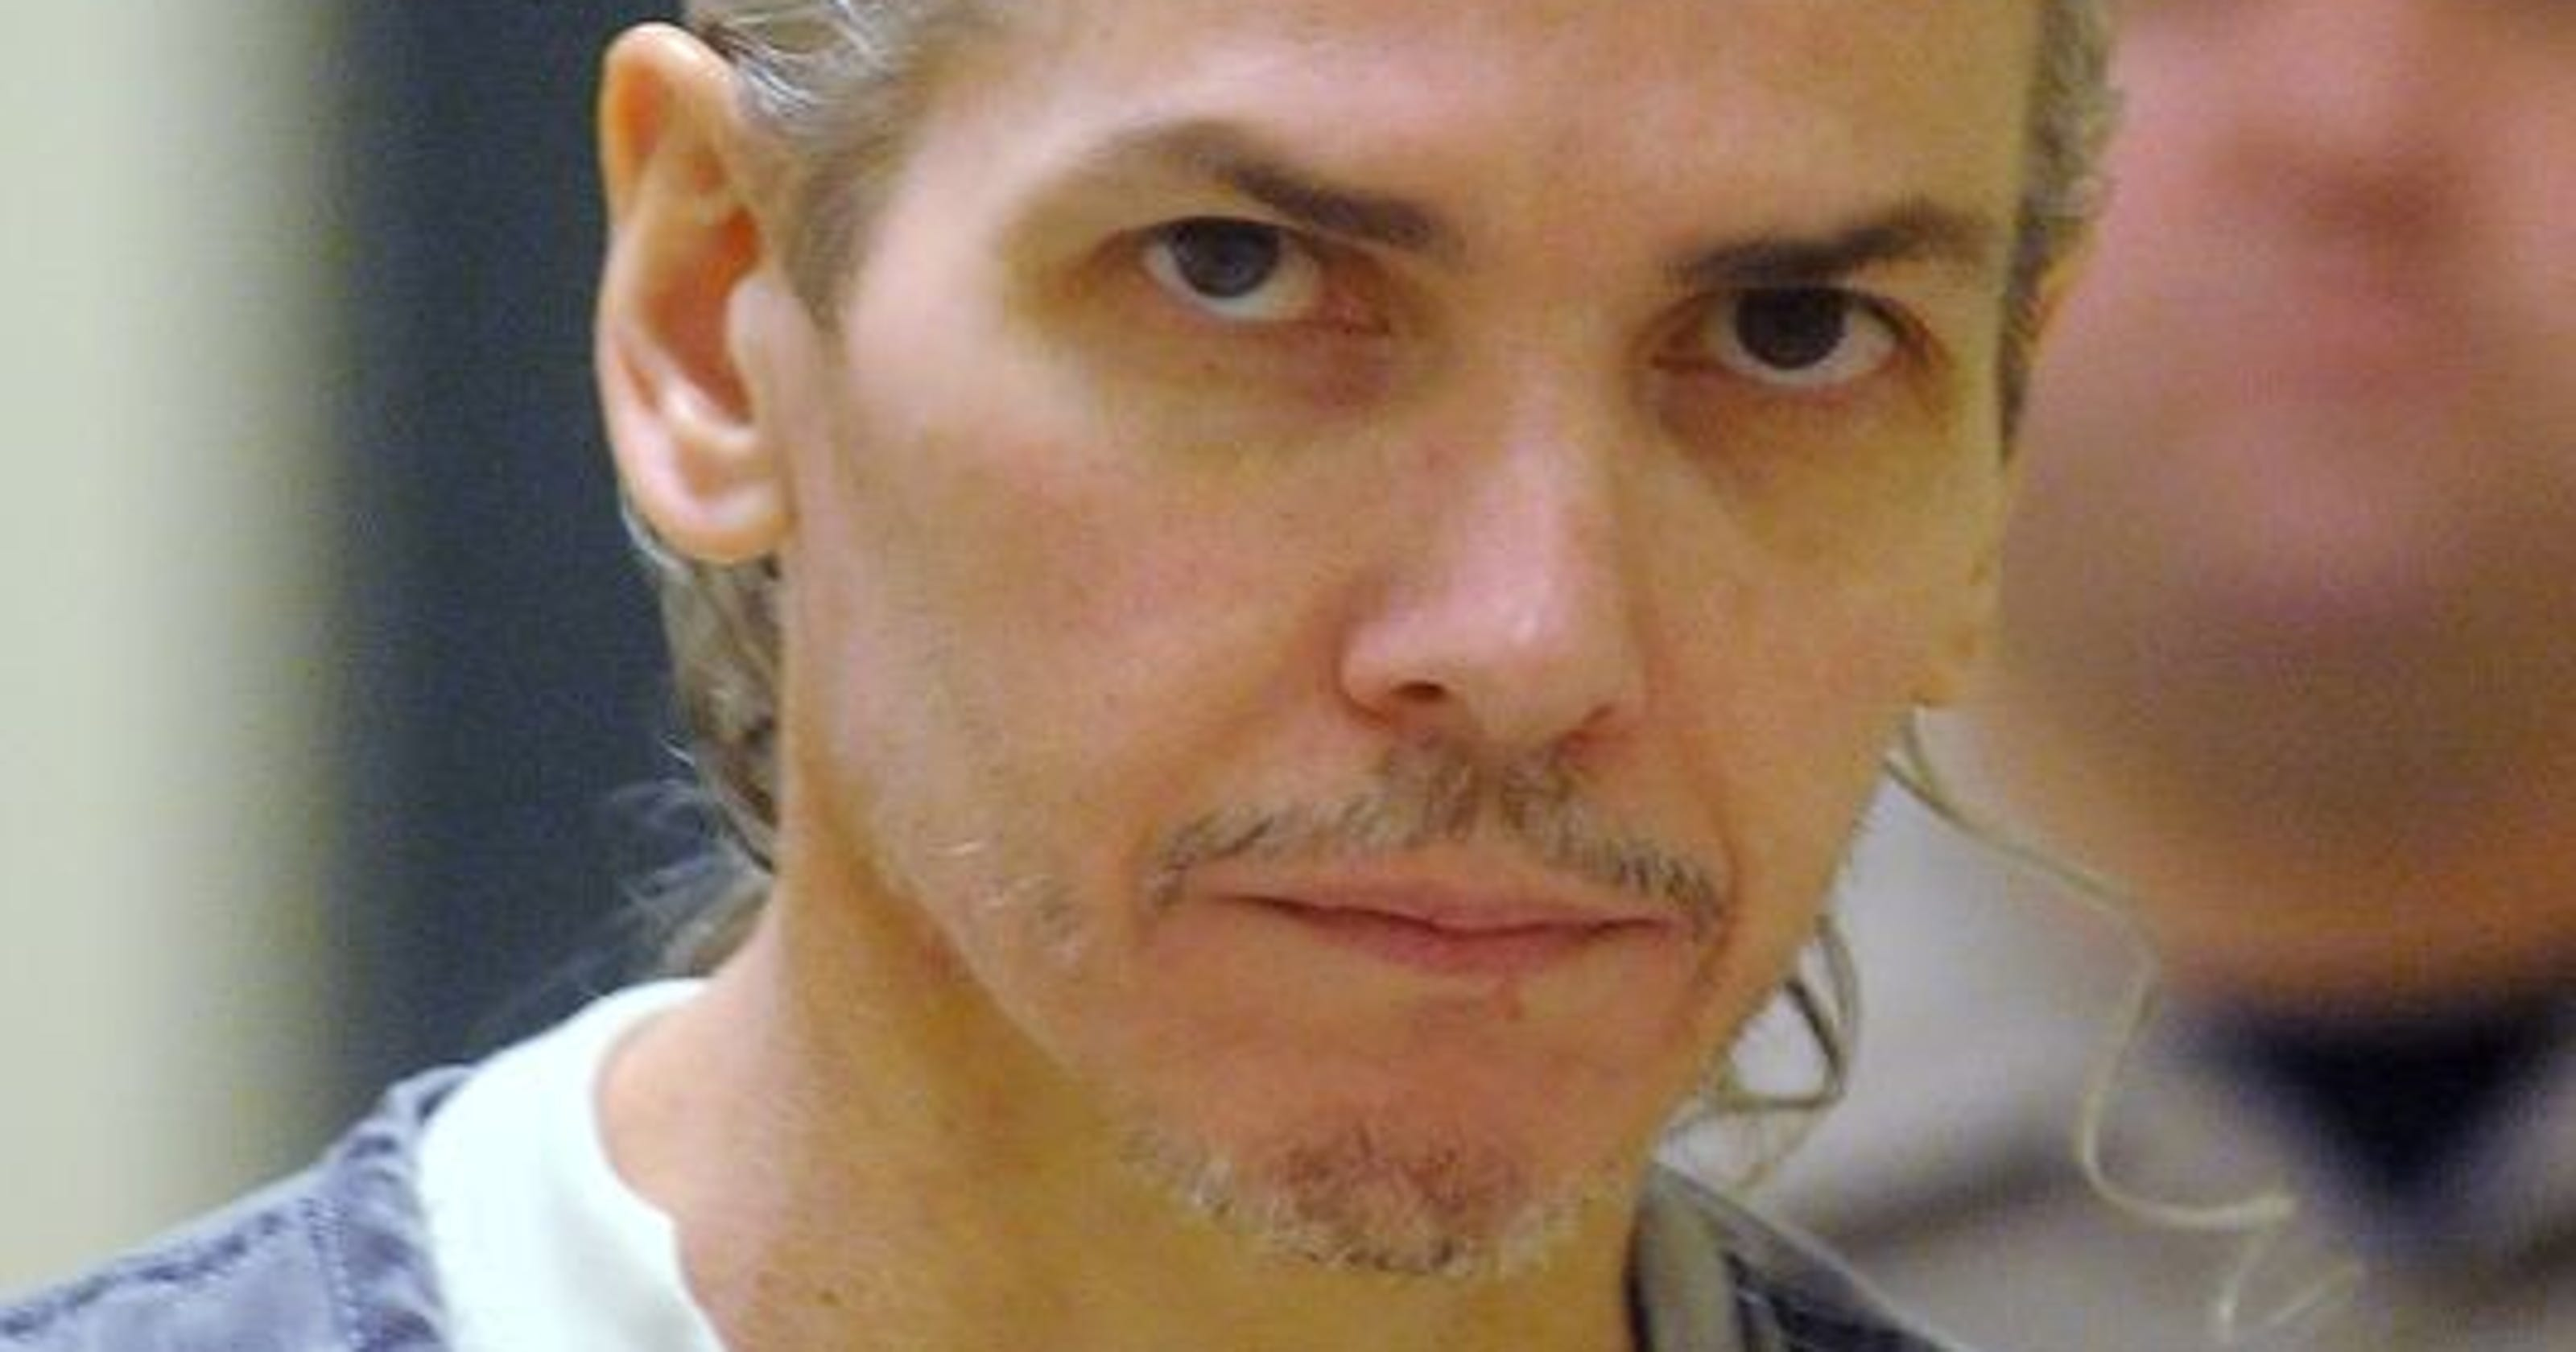 Rodney Berget to be executed 18 years after his brother met